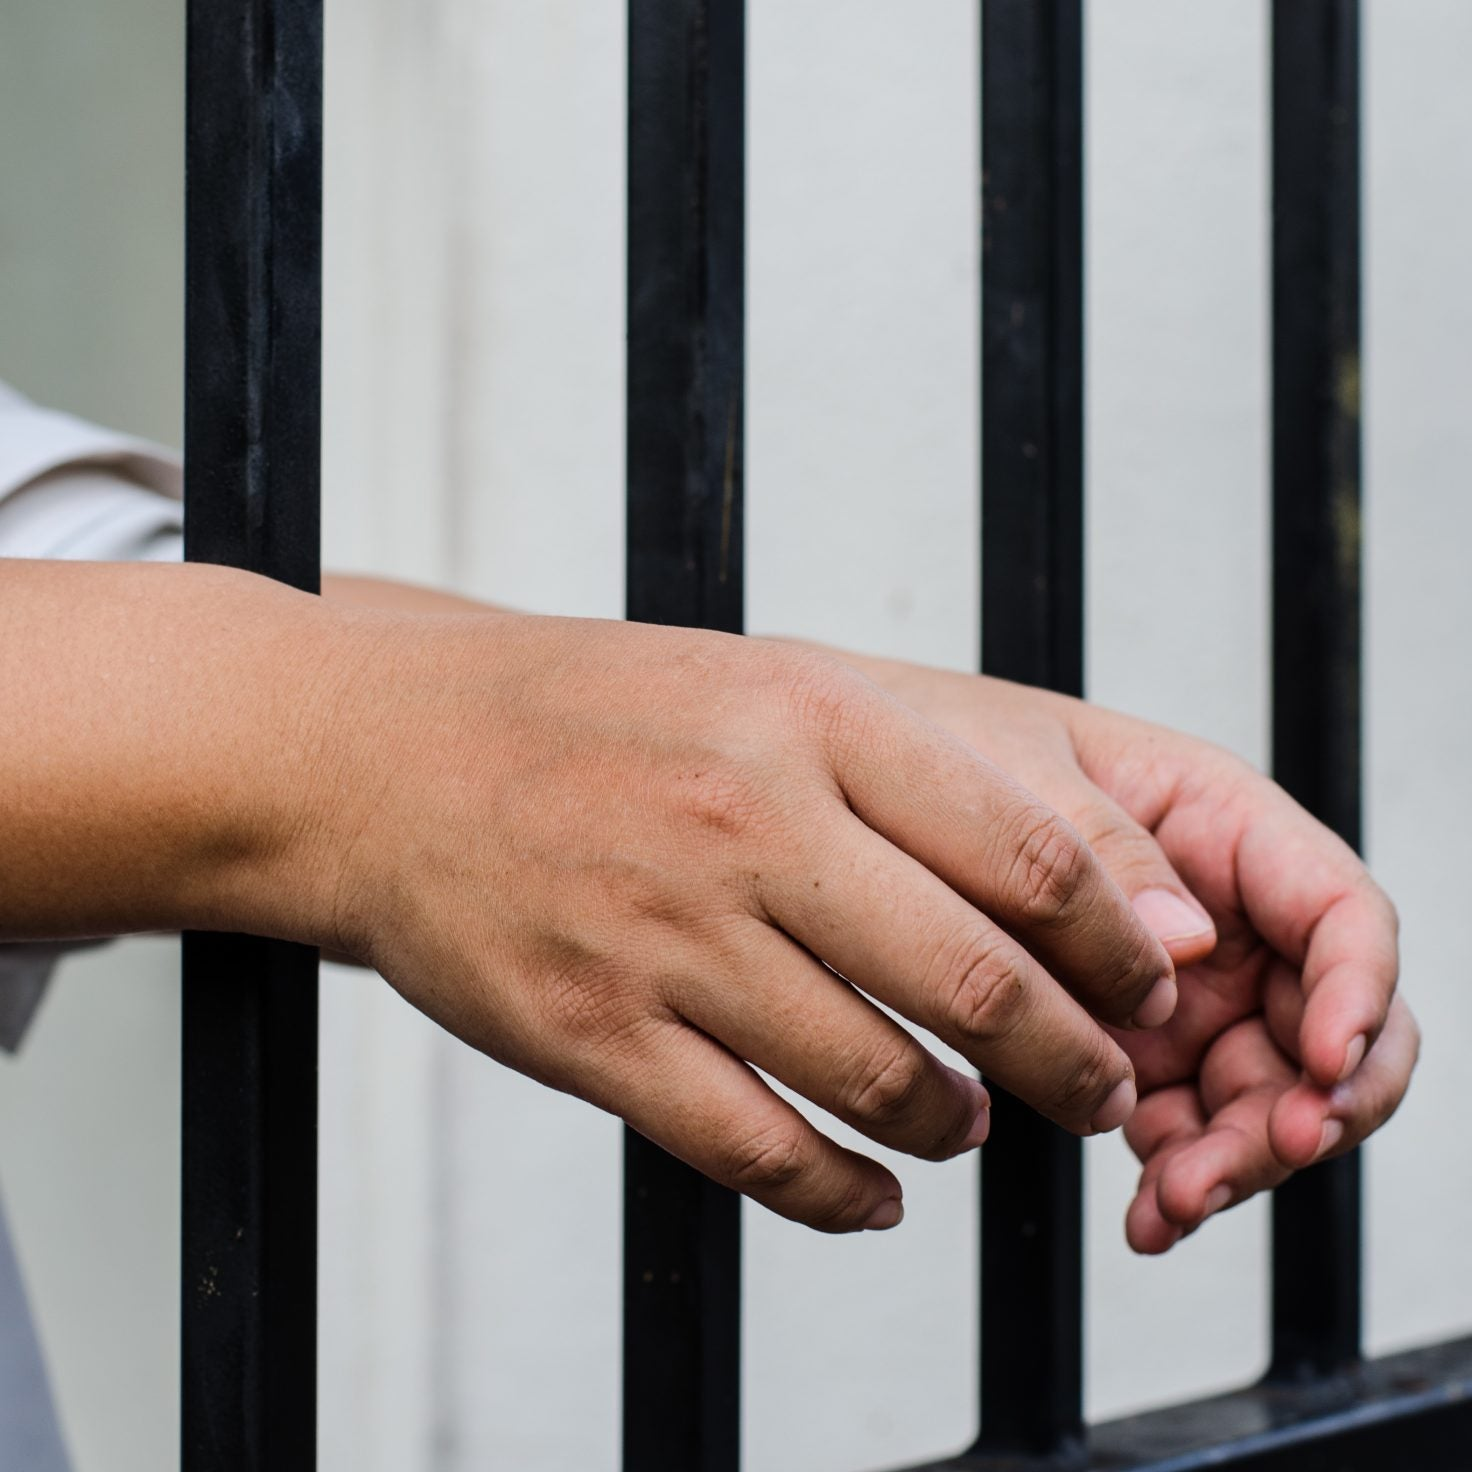 Colorado Woman Files Lawsuit After Being Left Alone To Give Birth In Jail Cell